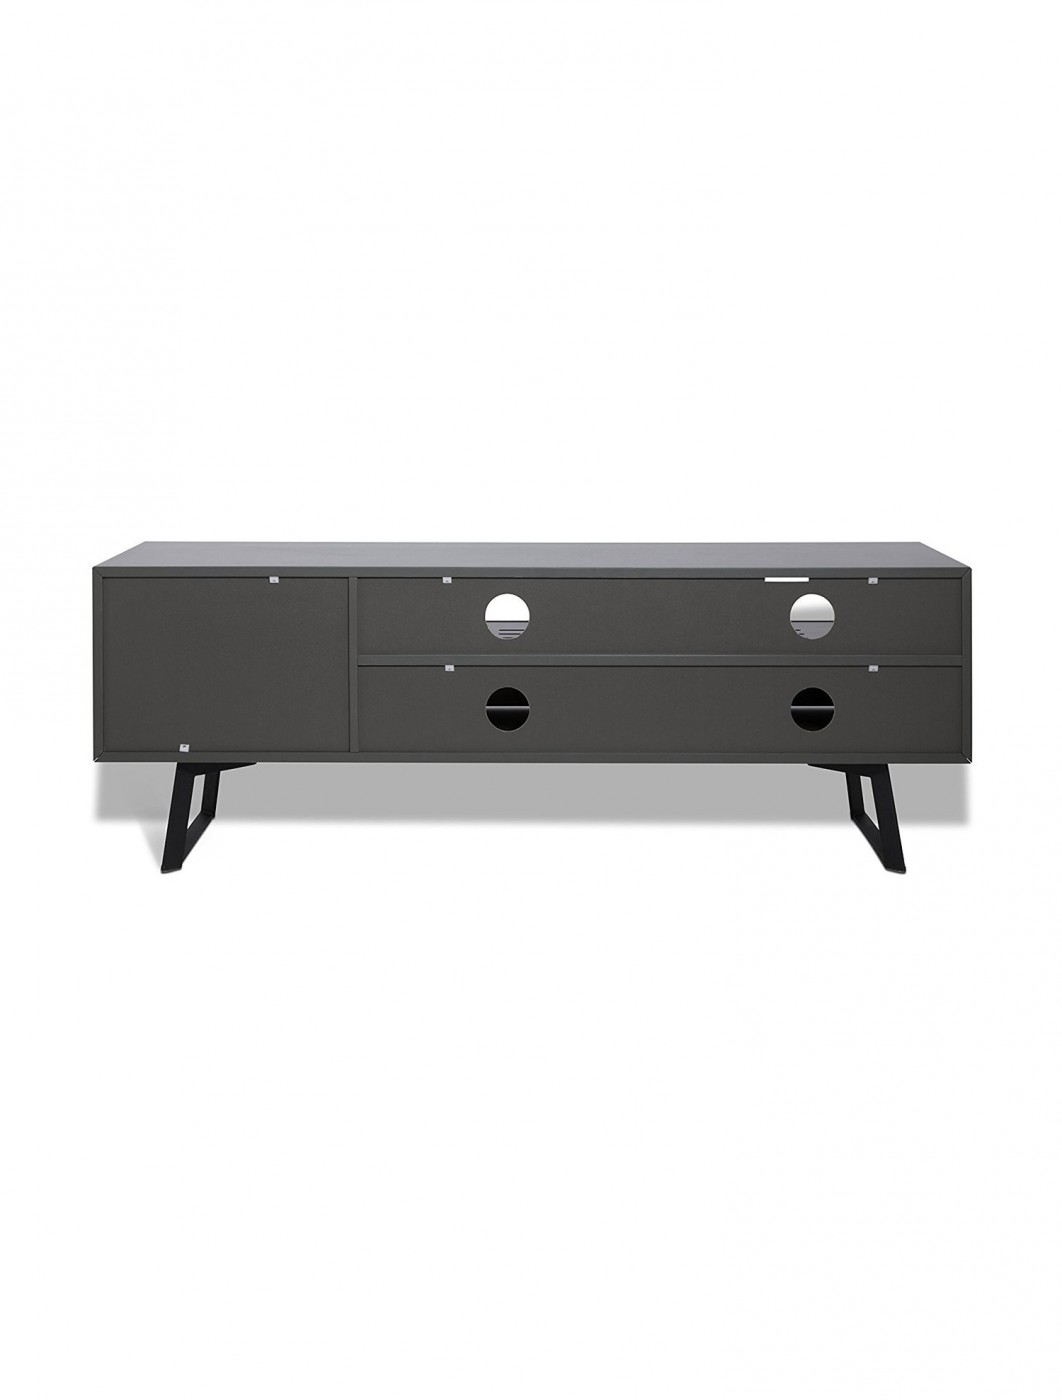 Alphason Carbon 1600mm TV Stand ADCA1600-GRY